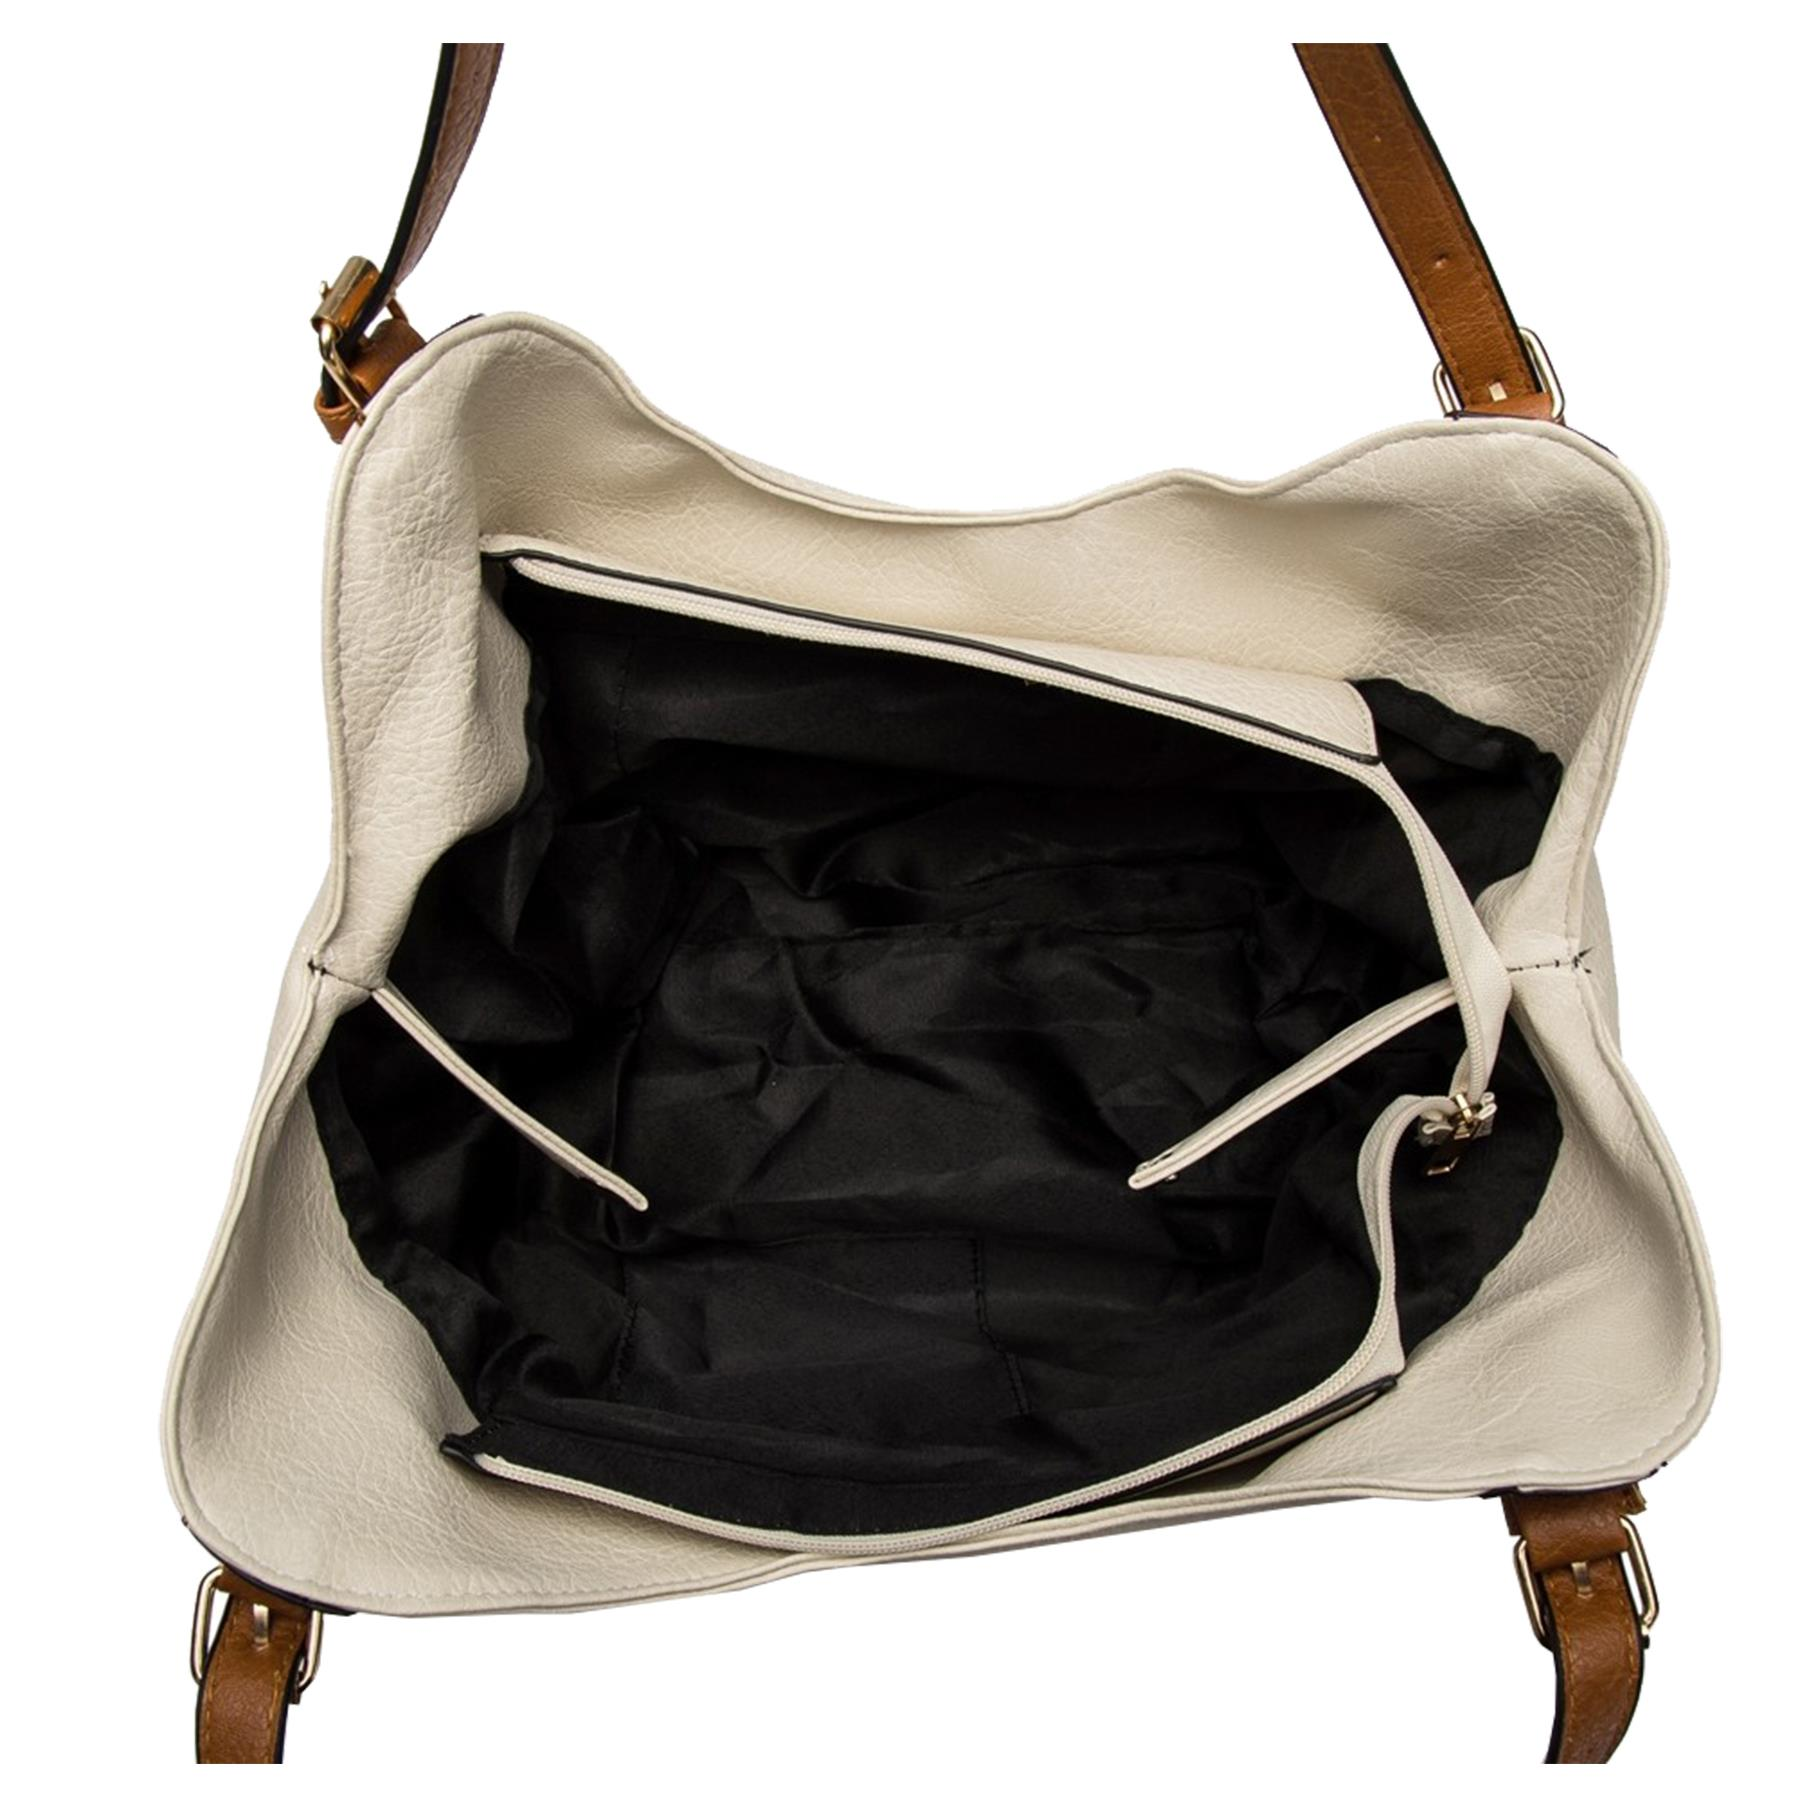 New-Ladies-Buckled-Straps-Two-Toned-Faux-Leather-Slouchy-Shoulder-Bag thumbnail 10